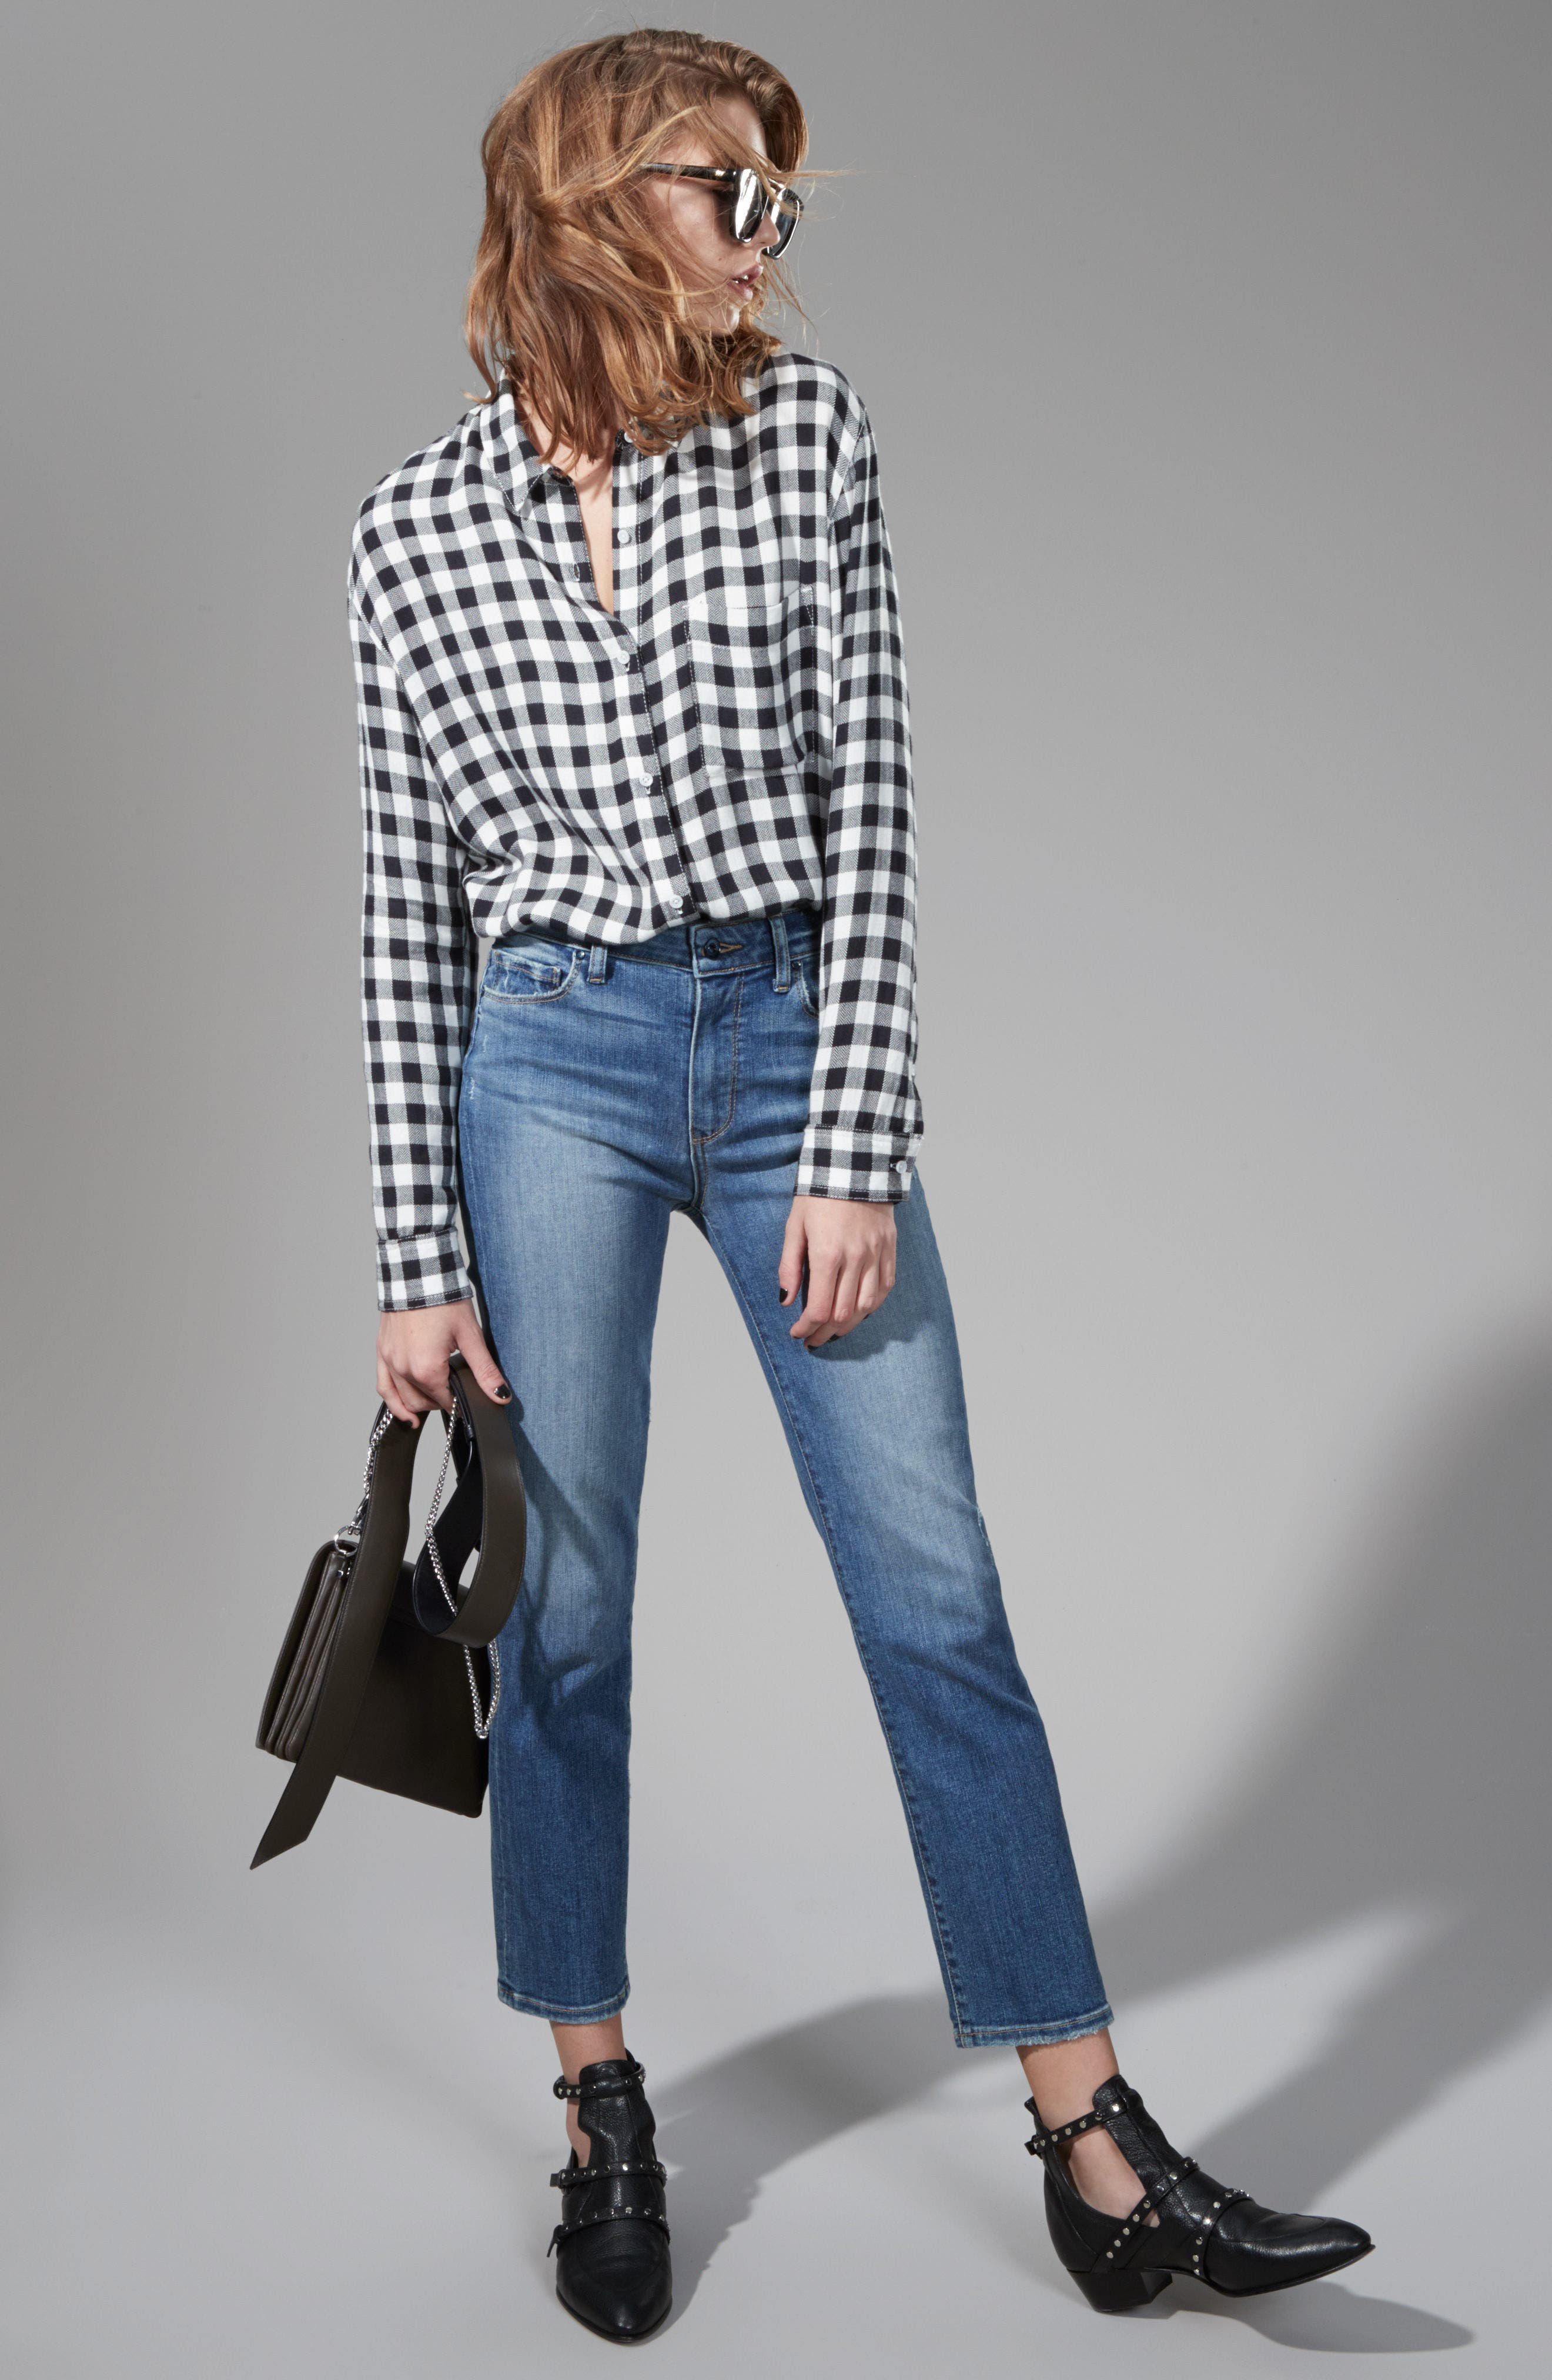 Treasure & Bond Shirt & PAIGE Jeans Outfit with Accessories